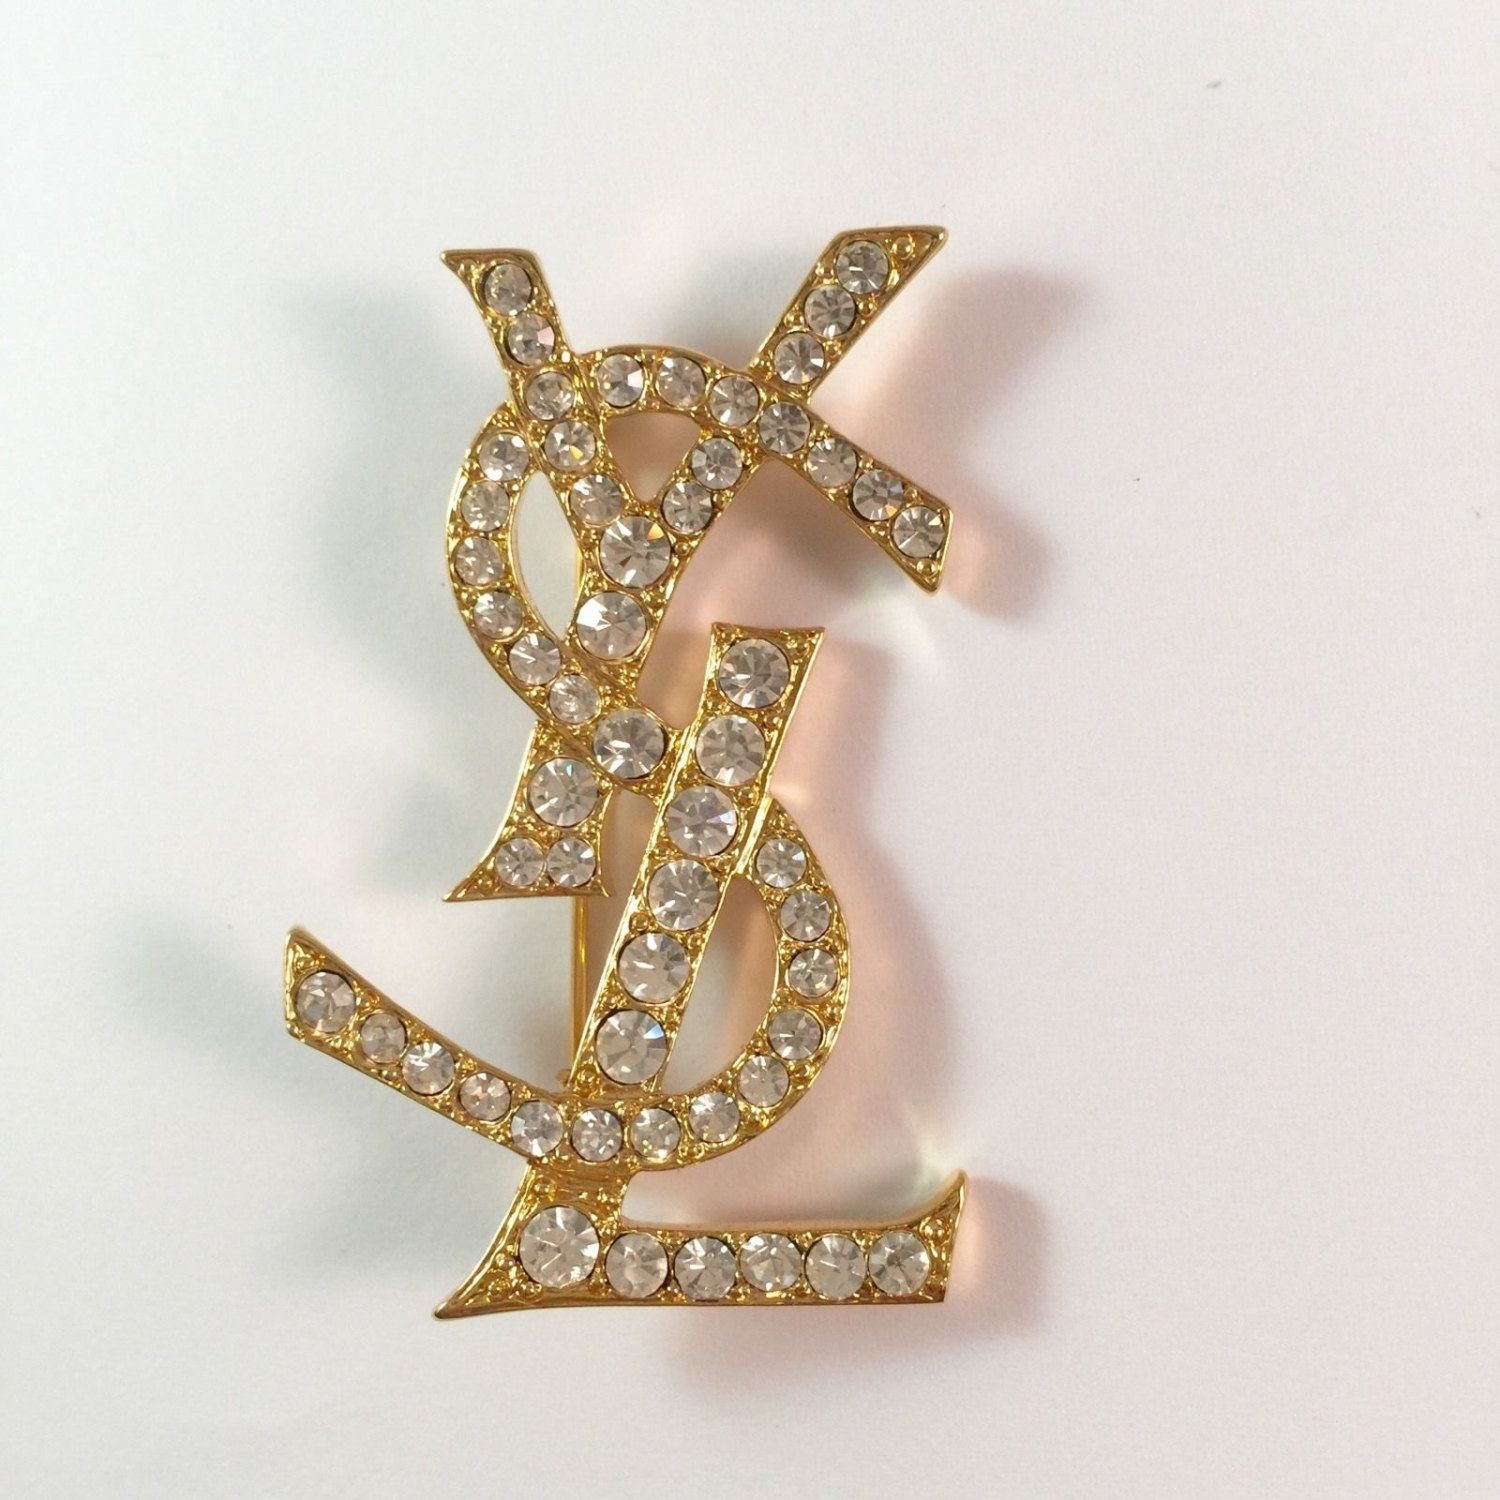 e33a6e36d49 YSL Brooch -Authentic Yves Saint Laurent Signed Large Vintage Swarovski  Brooch Pin by MODELUNA76 on Etsy